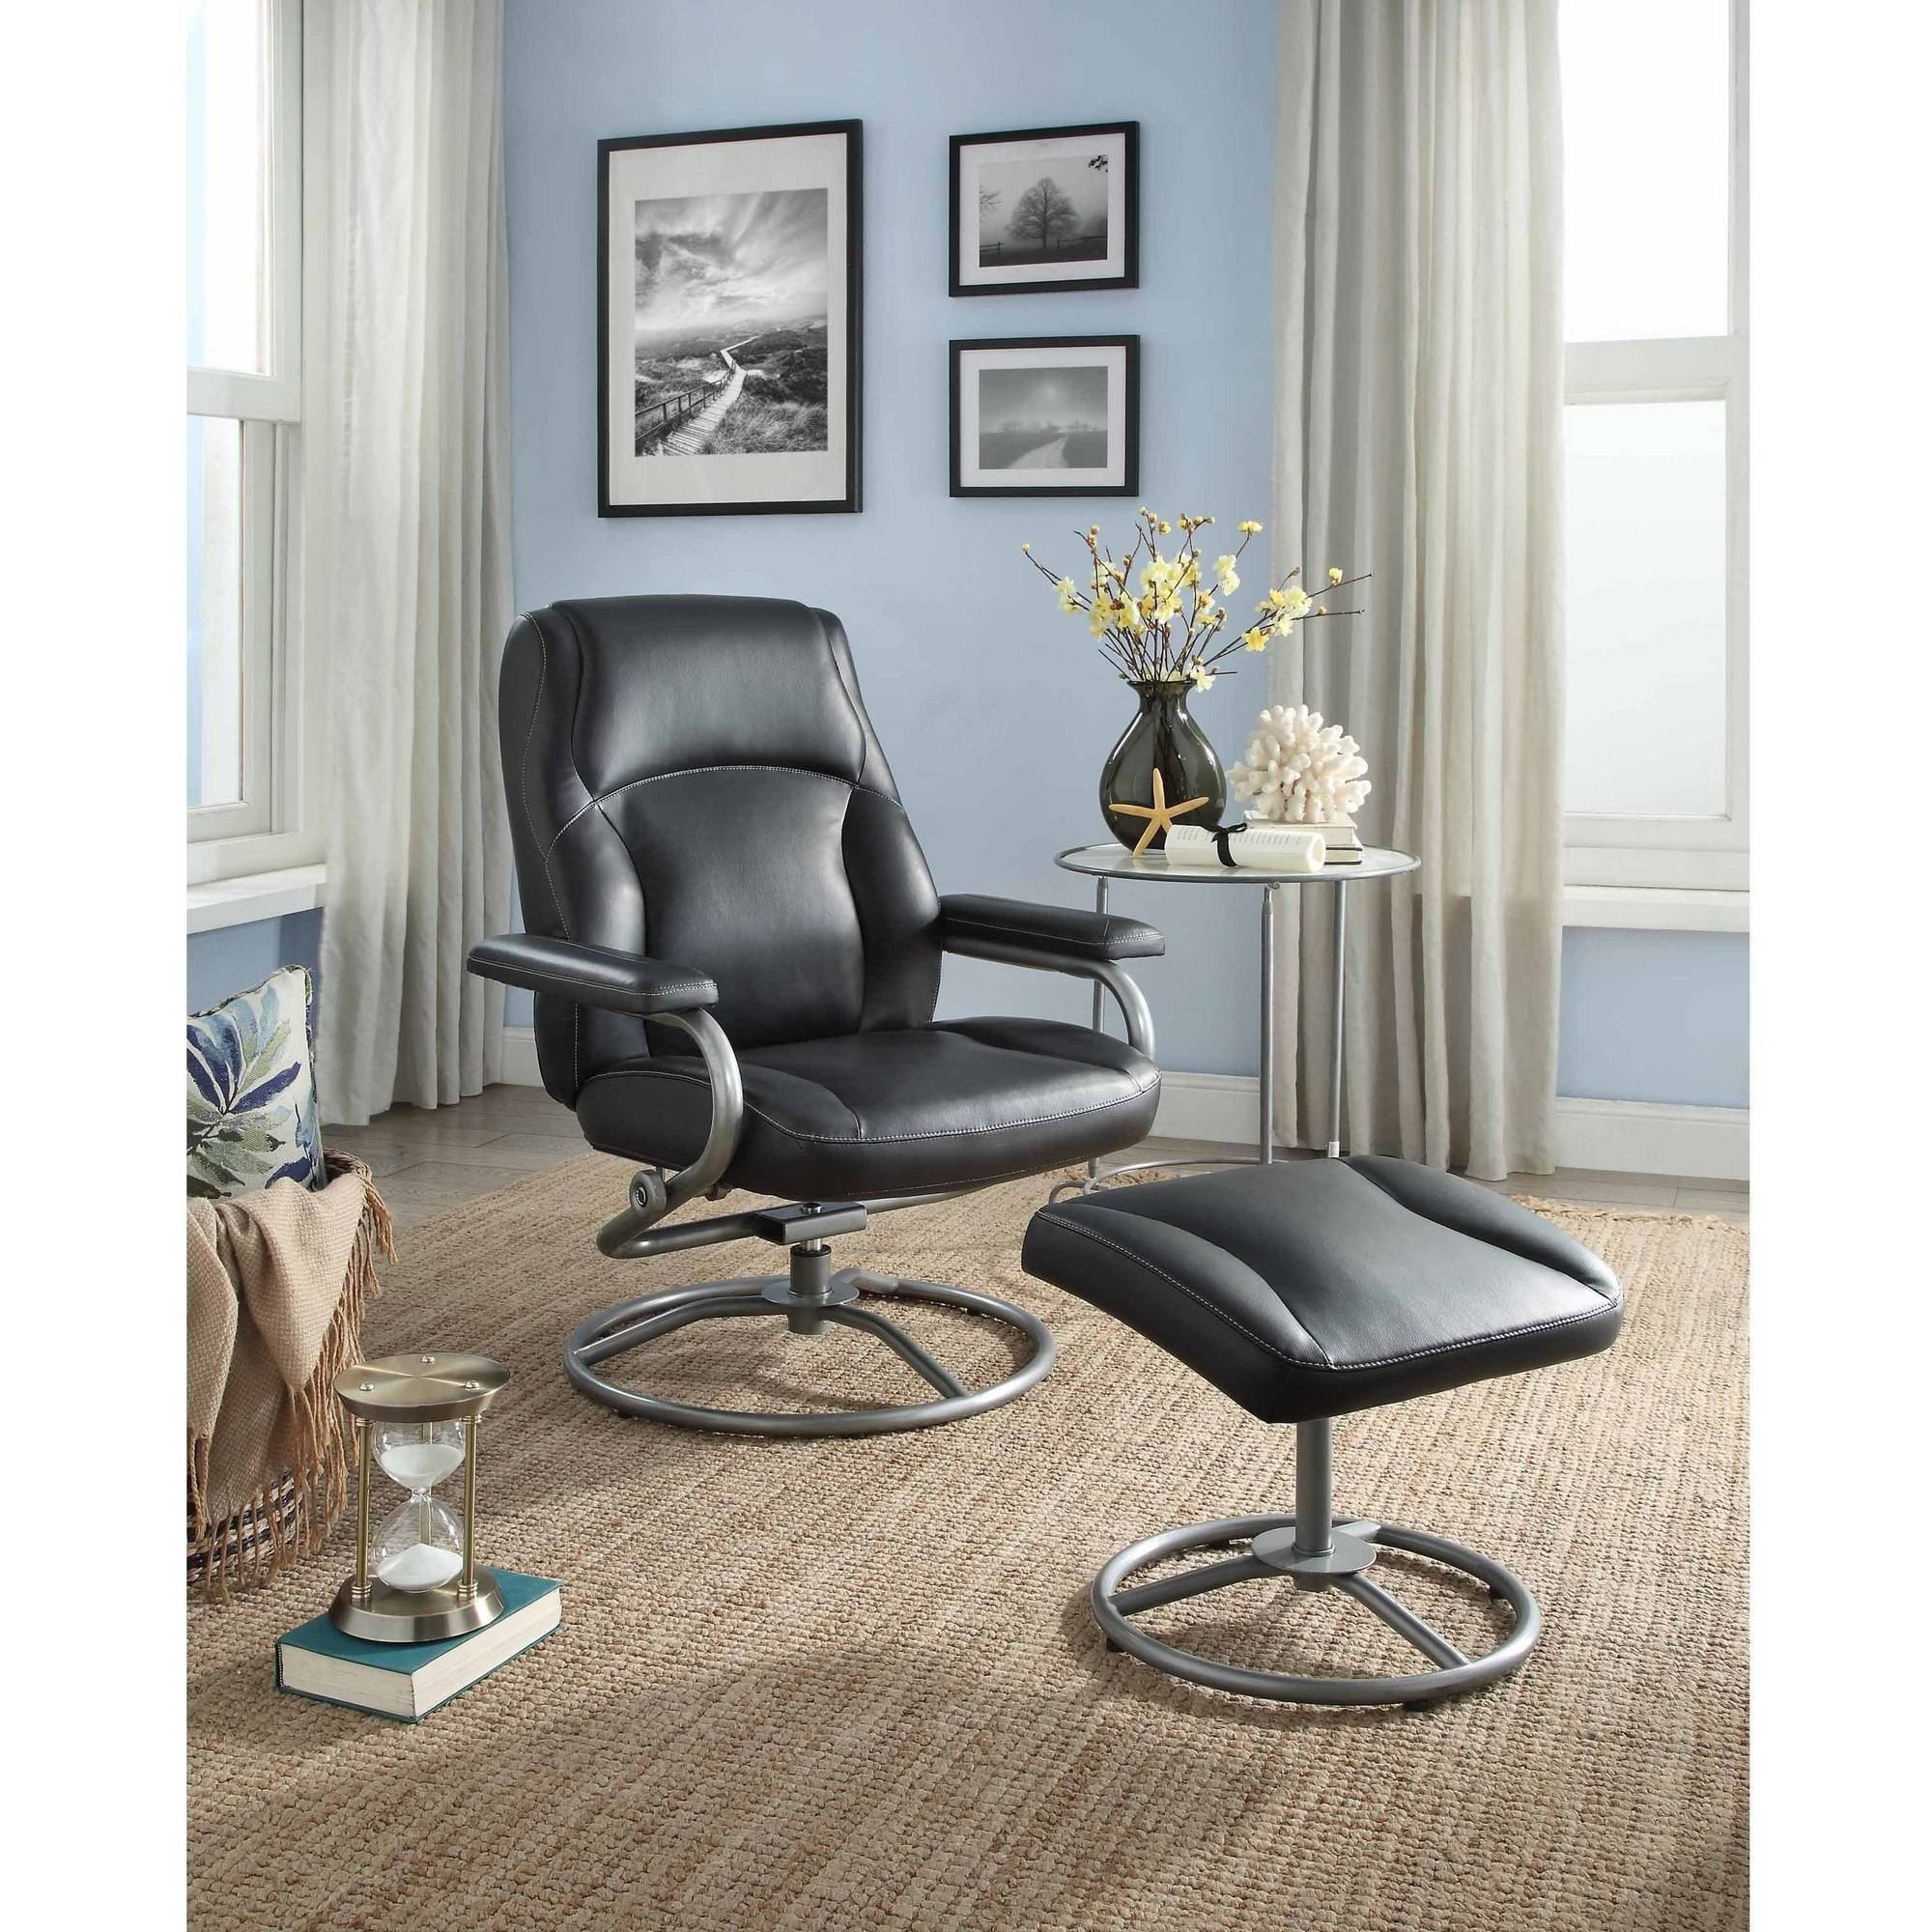 Lounge Chair for Teen Bedroom Unique Mainstays Plush Pillowed Recliner Swivel Chair and Ottoman Set Multiple Available Colors Walmart